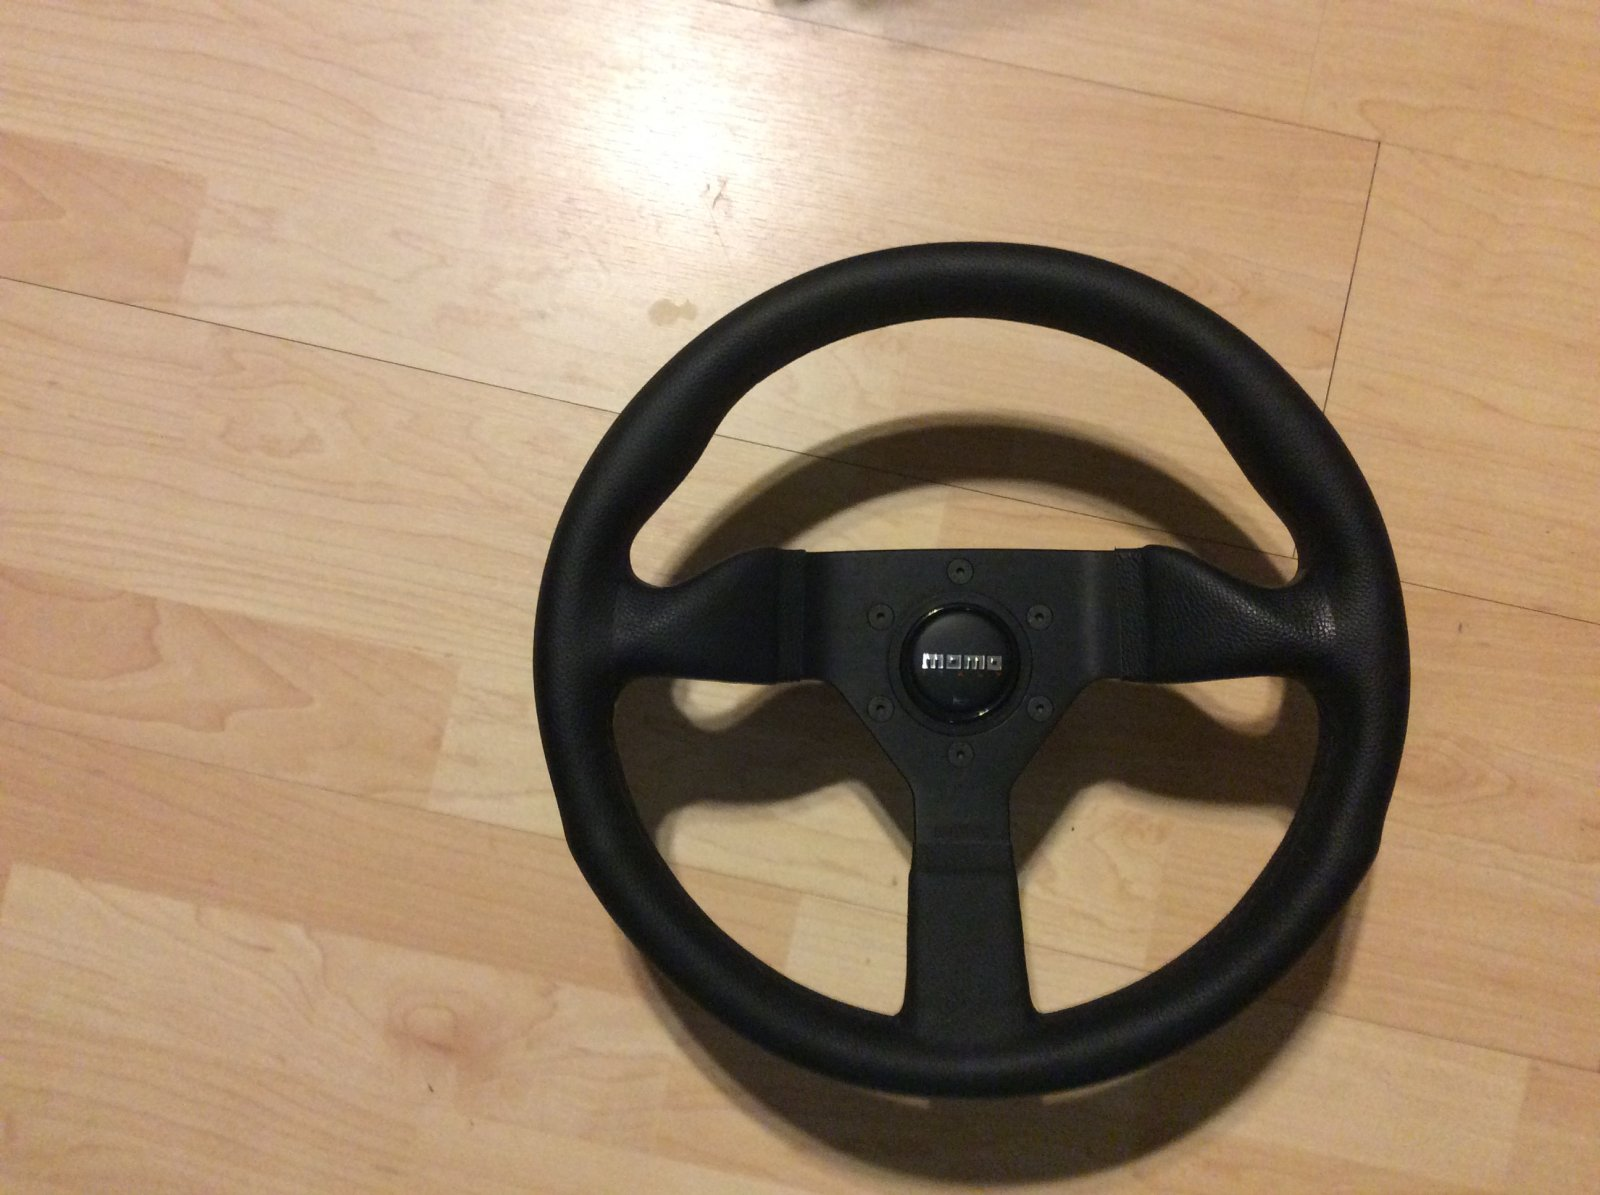 Accuforce and several steering rim